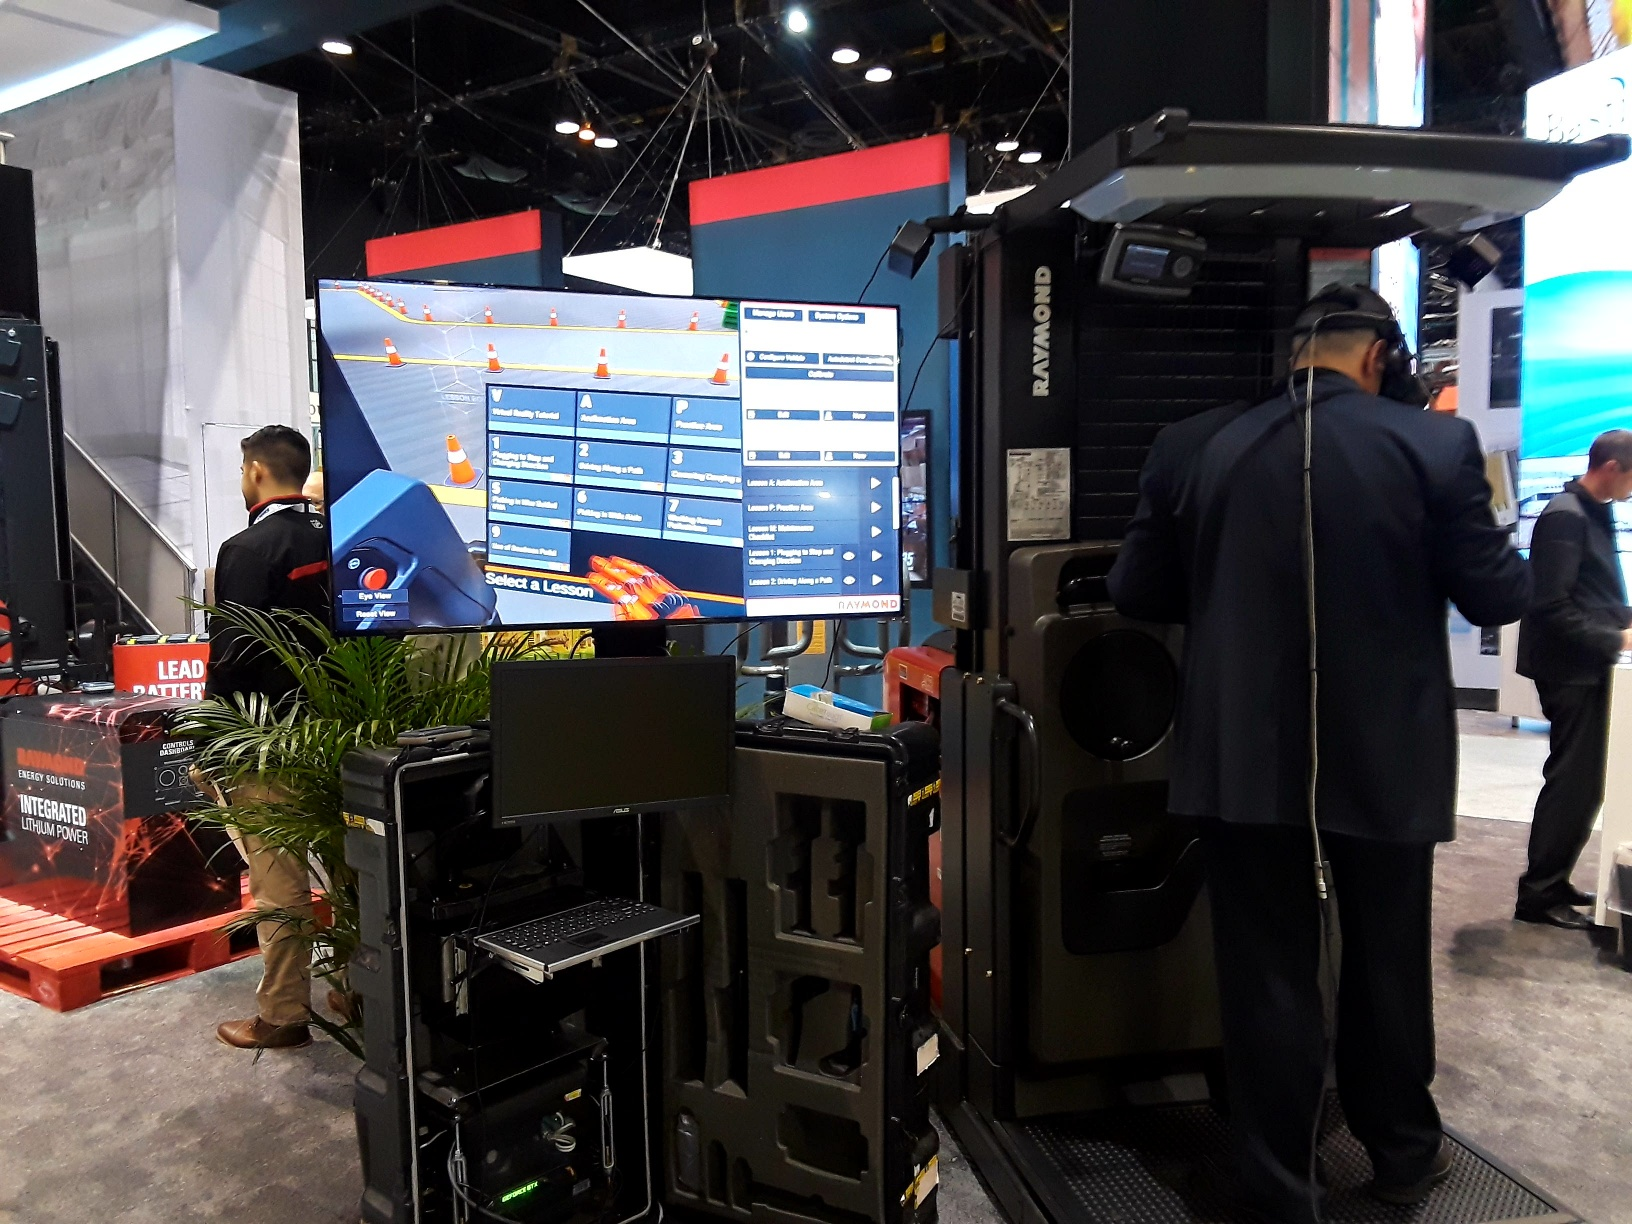 Intelligent manufacturing solutions: AR, VR and robotics abound at ProMat 2019